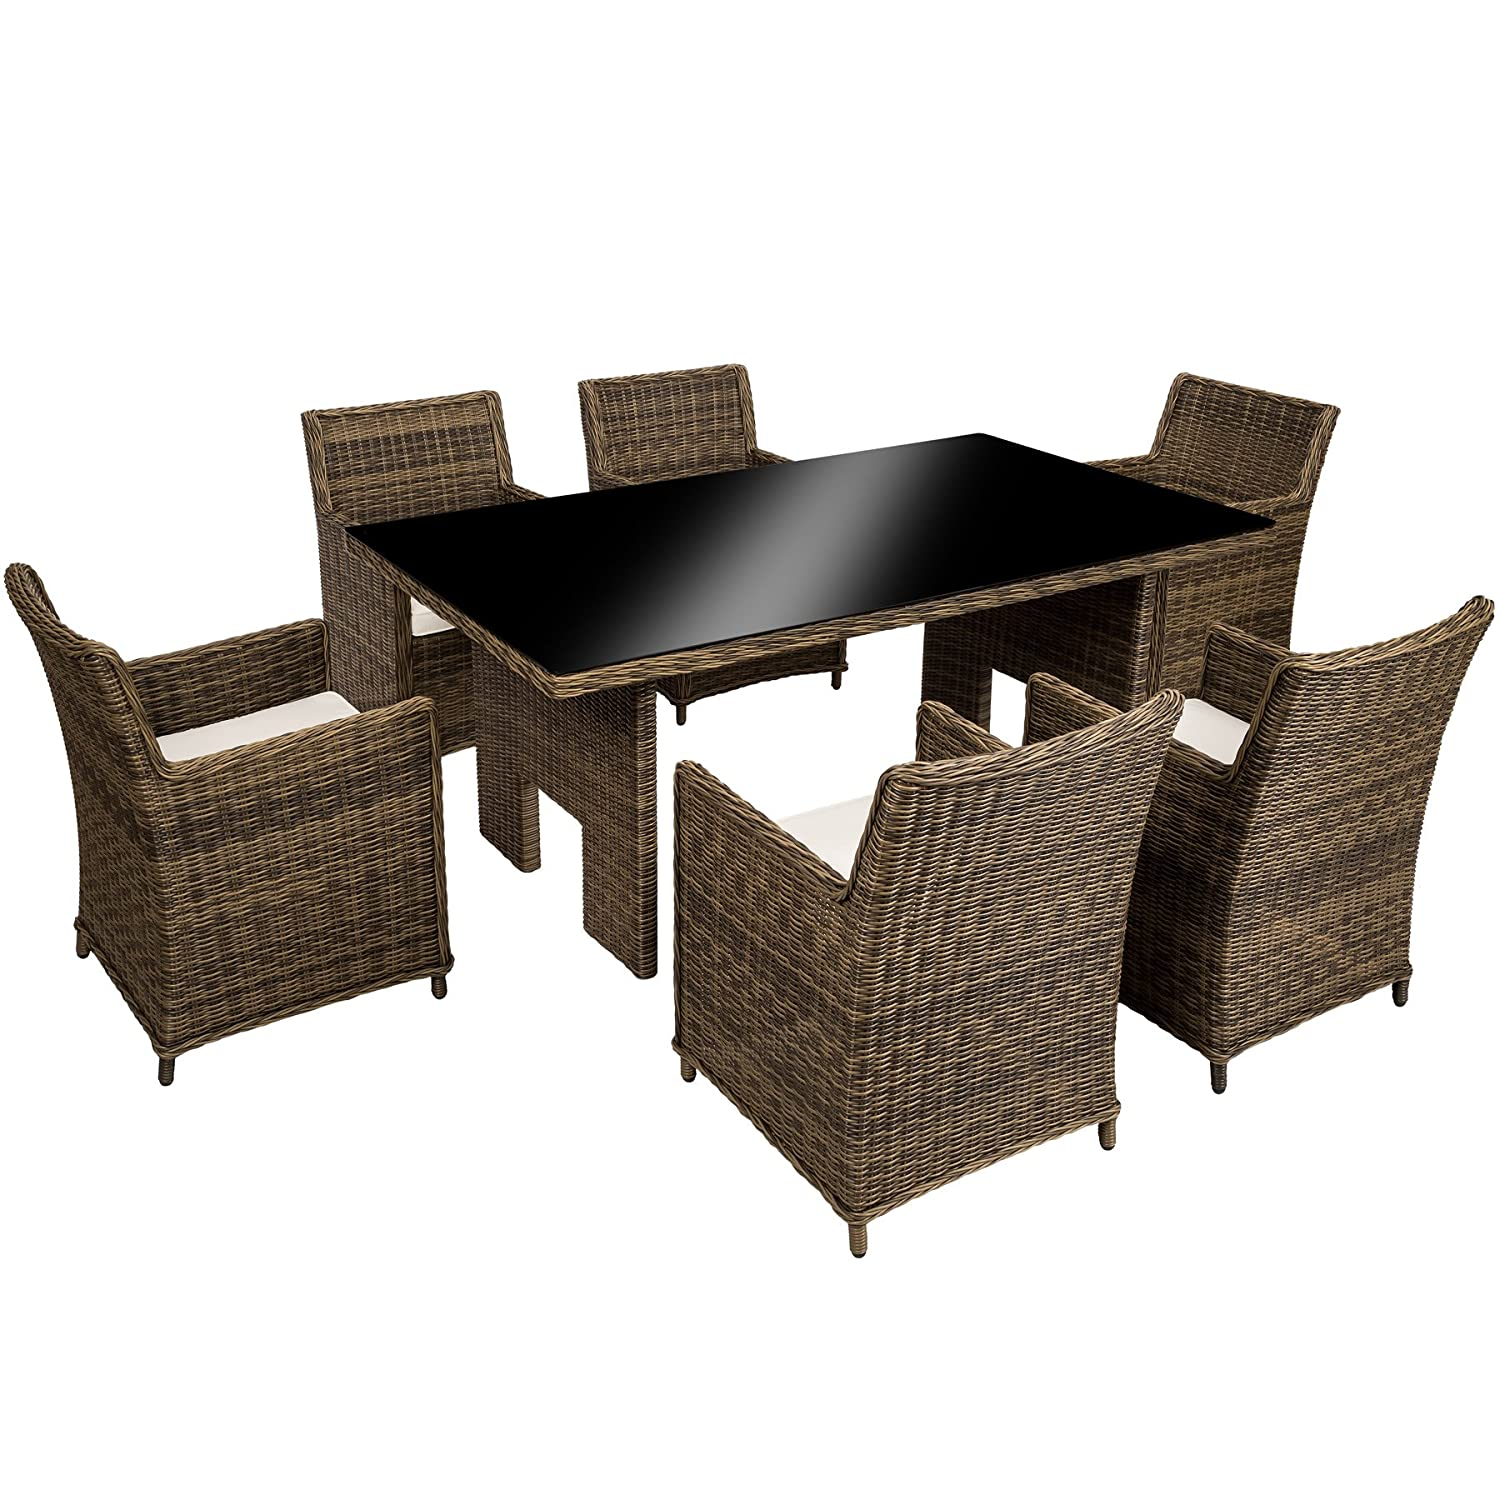 tectake hochwertige luxus aluminium poly rattan garten essgruppe rostfrei 6 st hle tisch mit. Black Bedroom Furniture Sets. Home Design Ideas